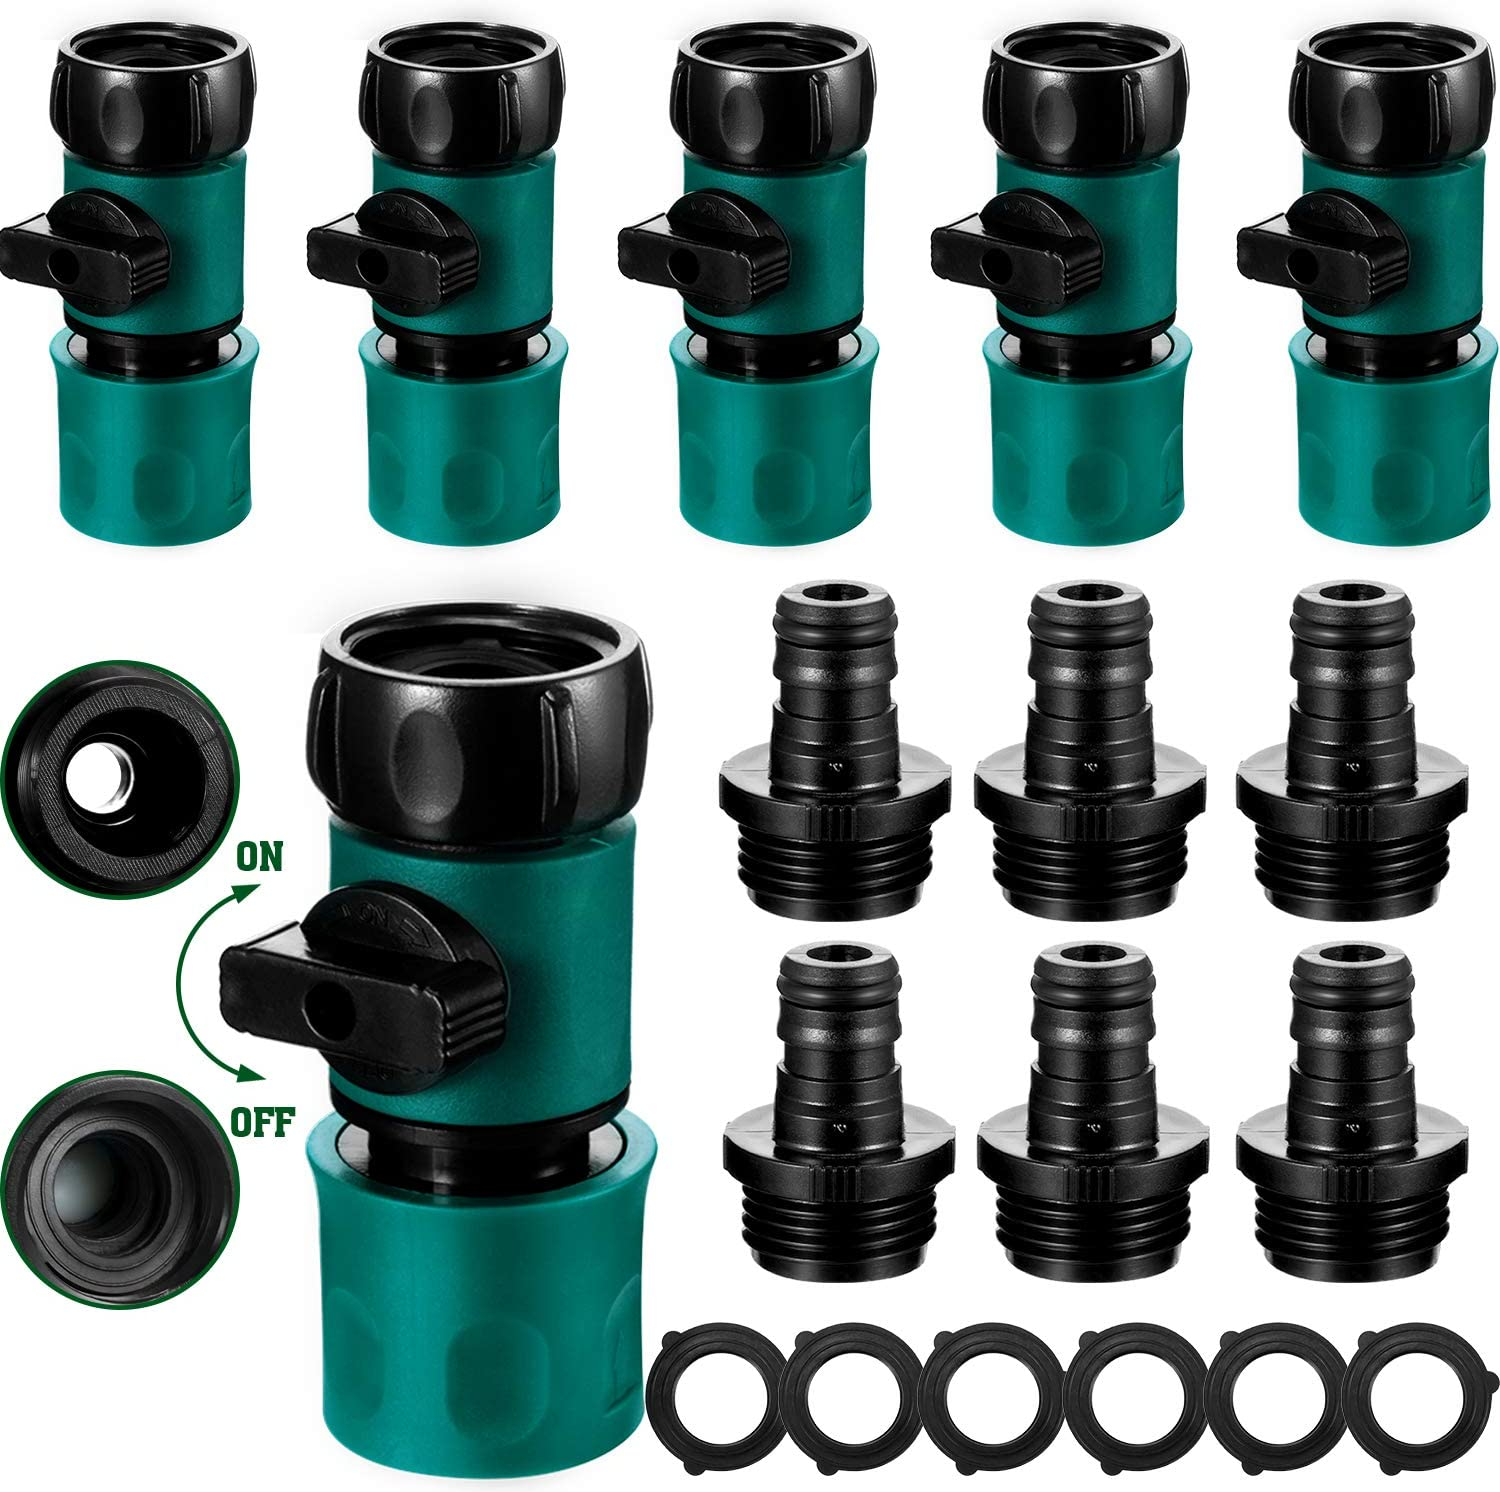 6 Sets Plastic Garden Hose Quick Connector with Shutoff Valve Set 3/4 Inch Hose Connect Fitting Male and Female Set Quick Release Hose Adapter Kit with 12 Pieces Rubber Gaskets for Water Hose Coupling